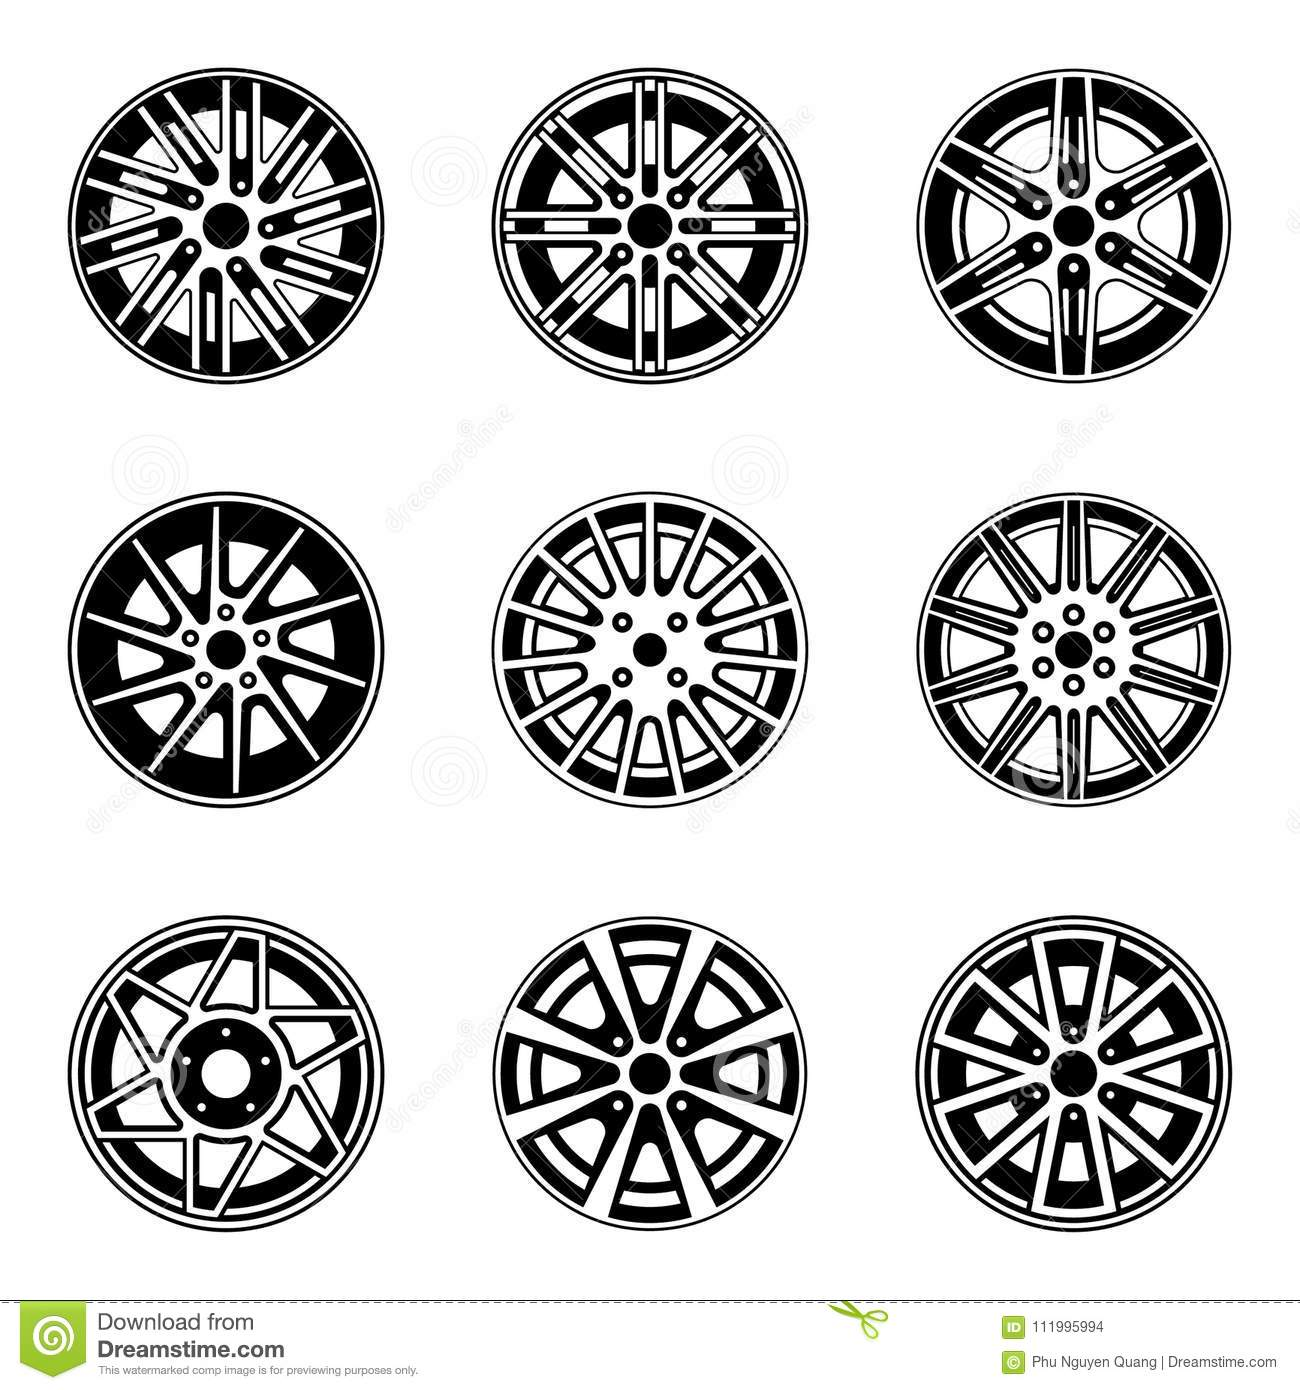 Car Wheel And Rims Icons Set Of Drawing Isolated Objects Stock Vector Illustration Of Black Rotation 111995994